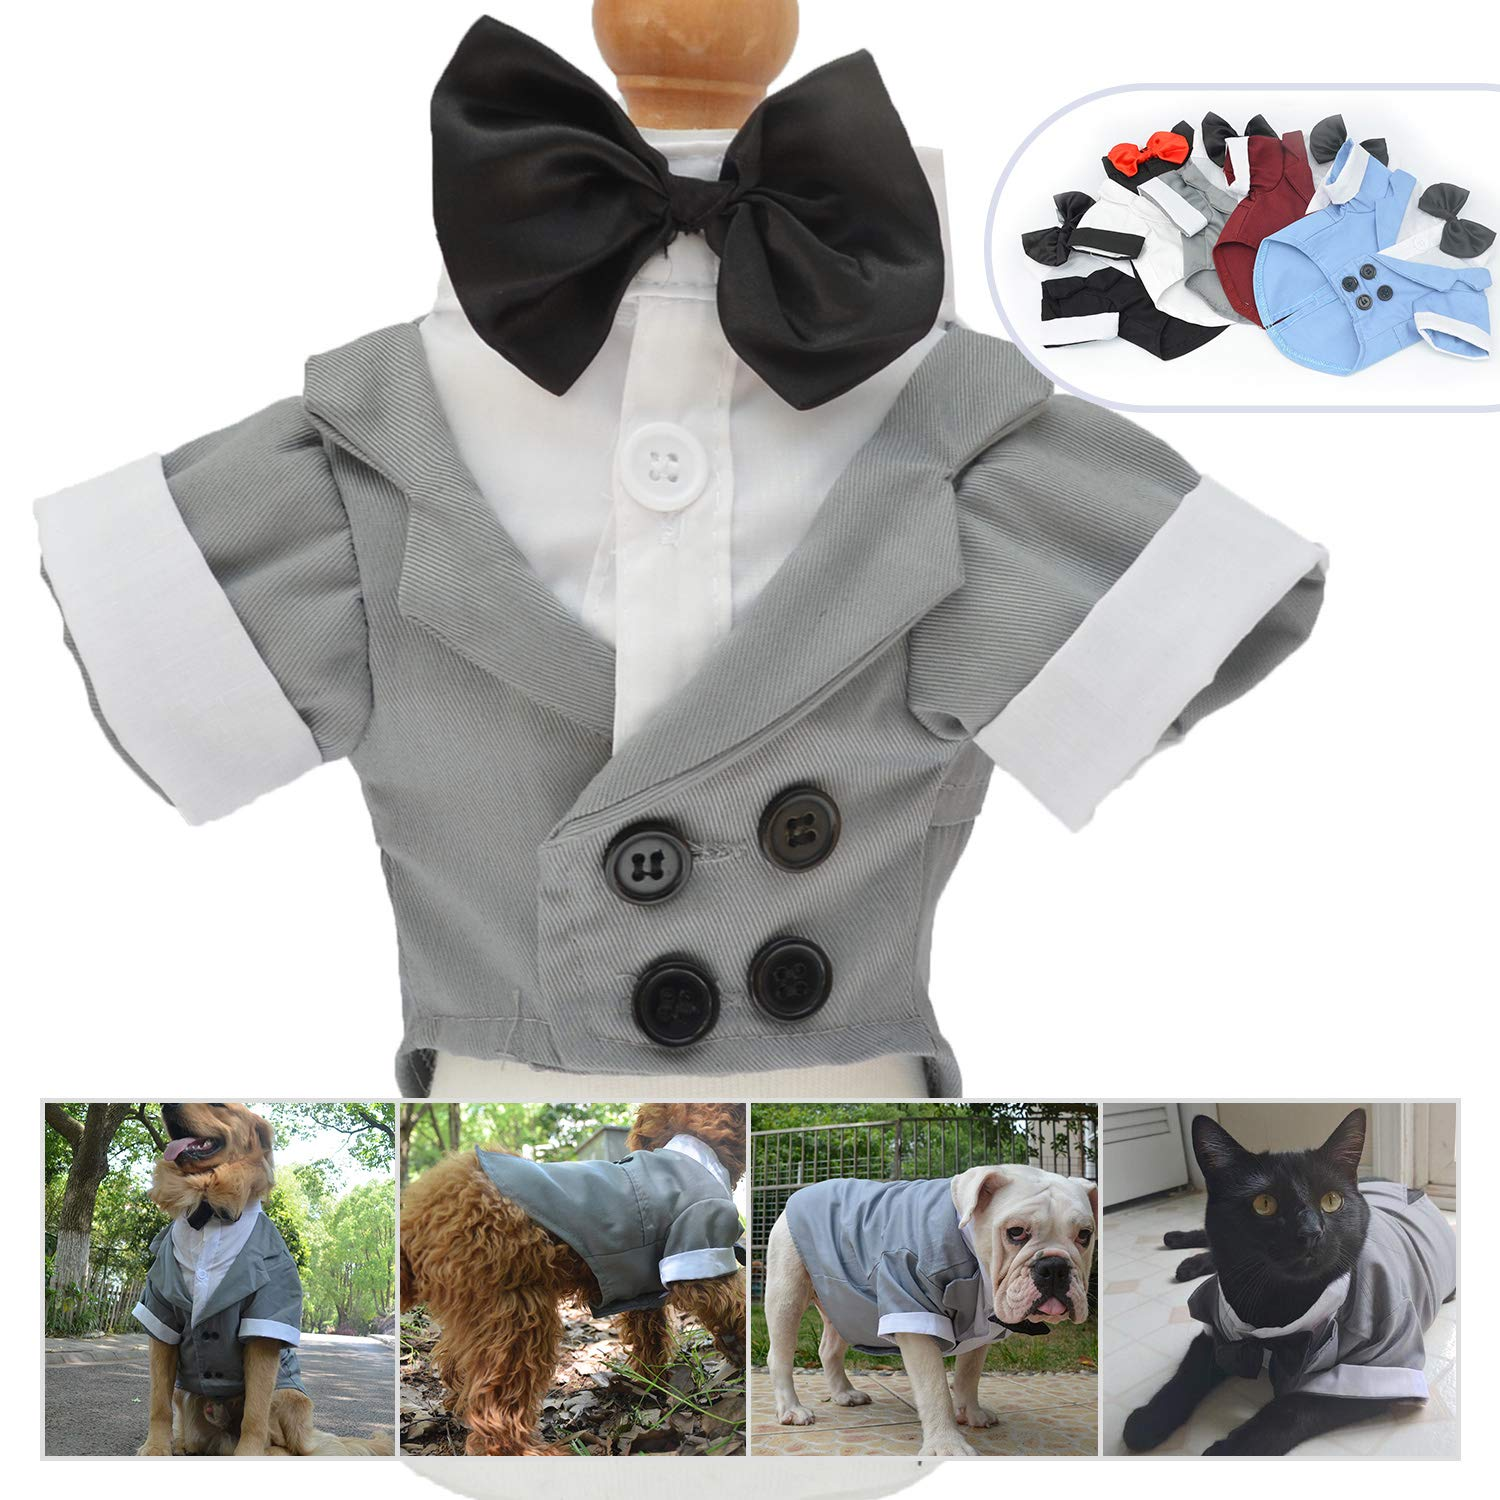 L, Gray longlongpet Pet Apparel Dog Clothes Suit Tuxedo With Bow Wedding Suits Party Costumes For Small Middle Large Dogs